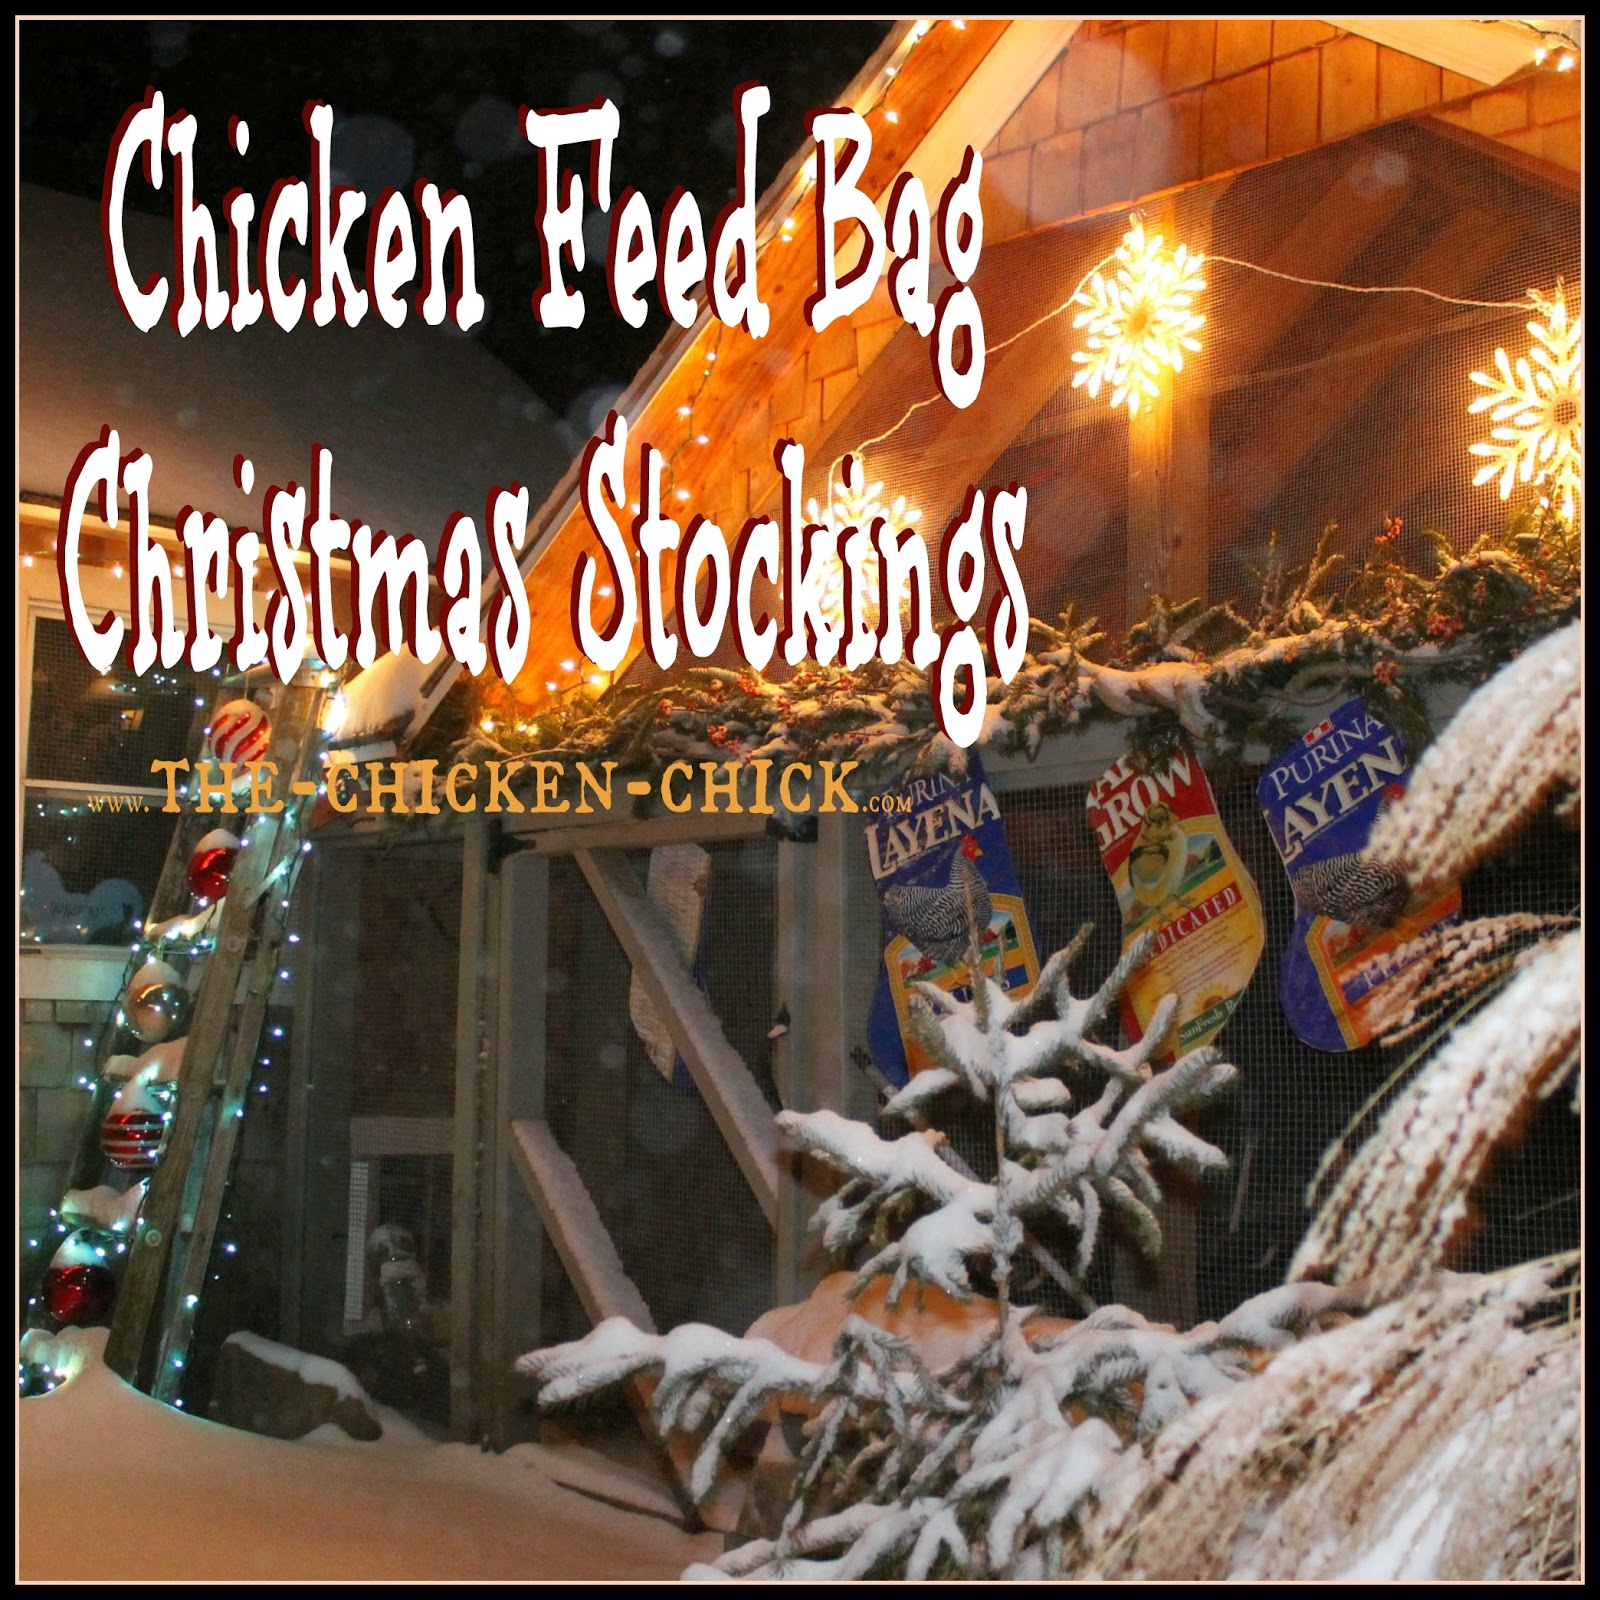 Today I am sharing my DIY repurposed feed bag chicken Christmas stocking tutorial so you can make them yourself and I can stop selling them in my online store and focus more on cookie baking next year!